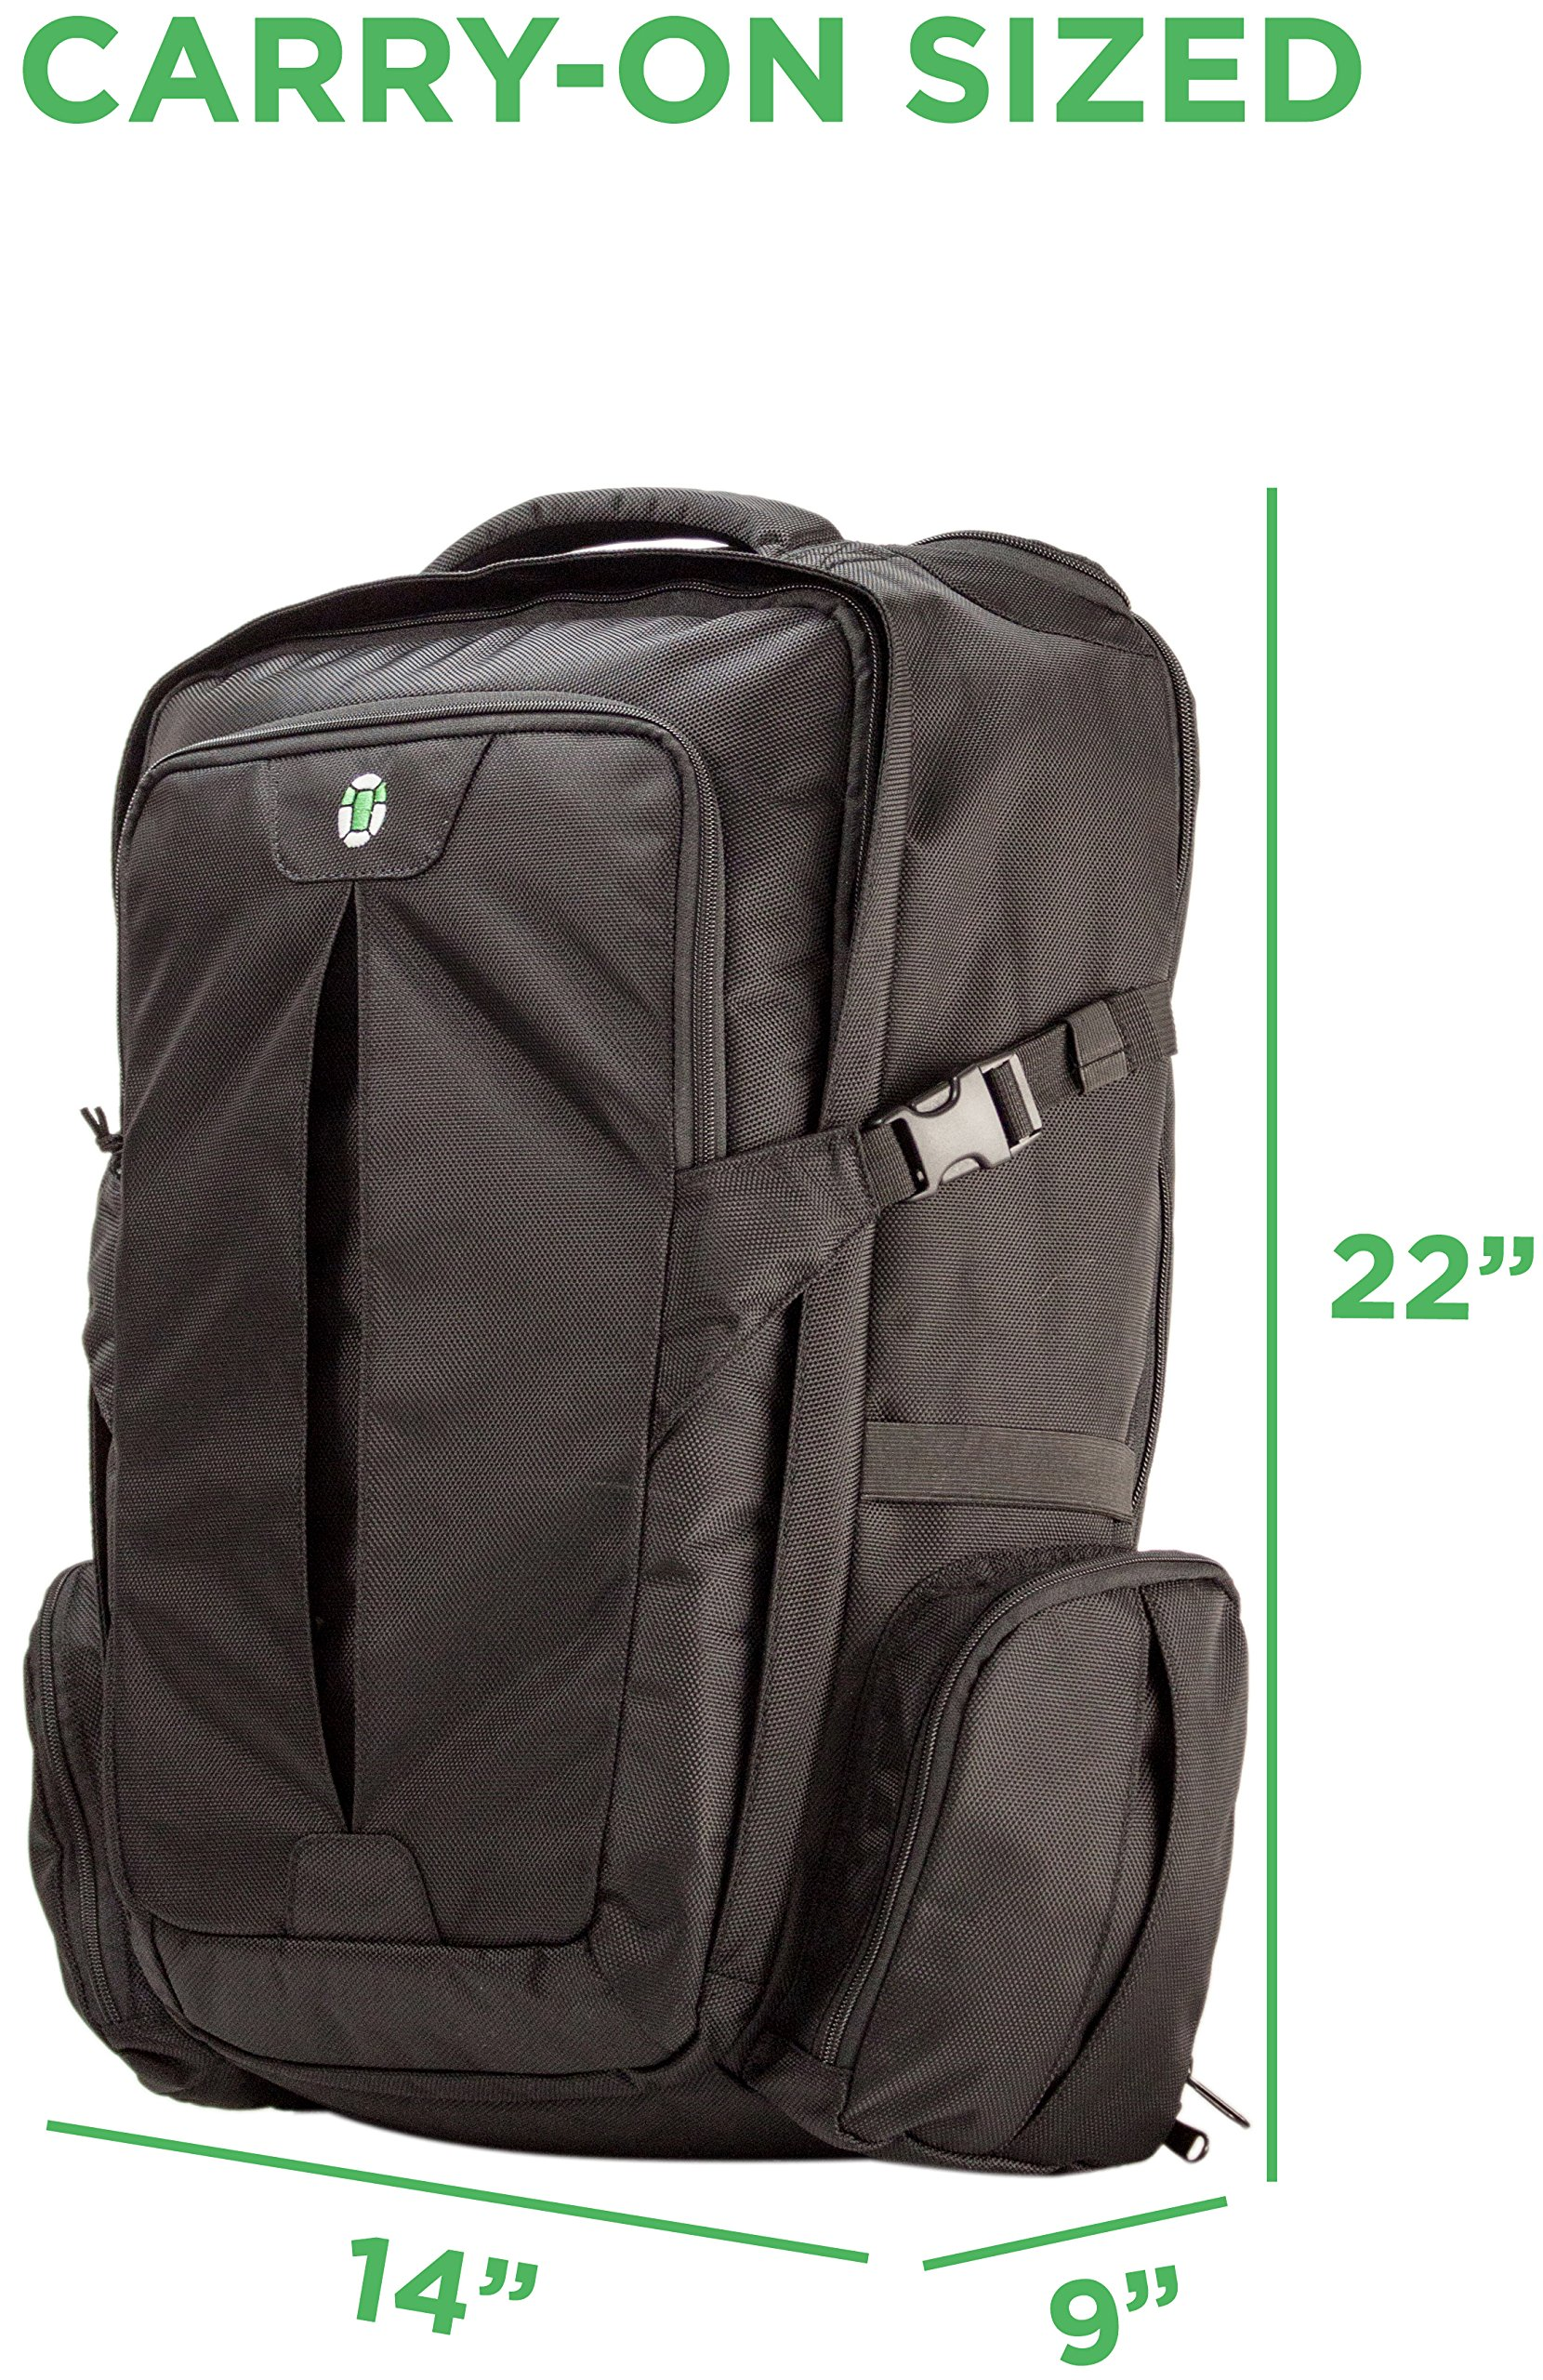 Tortuga Travel Backpack - 44L Maximum-Sized Carry On Travel Backpack by Tortuga (Image #2)